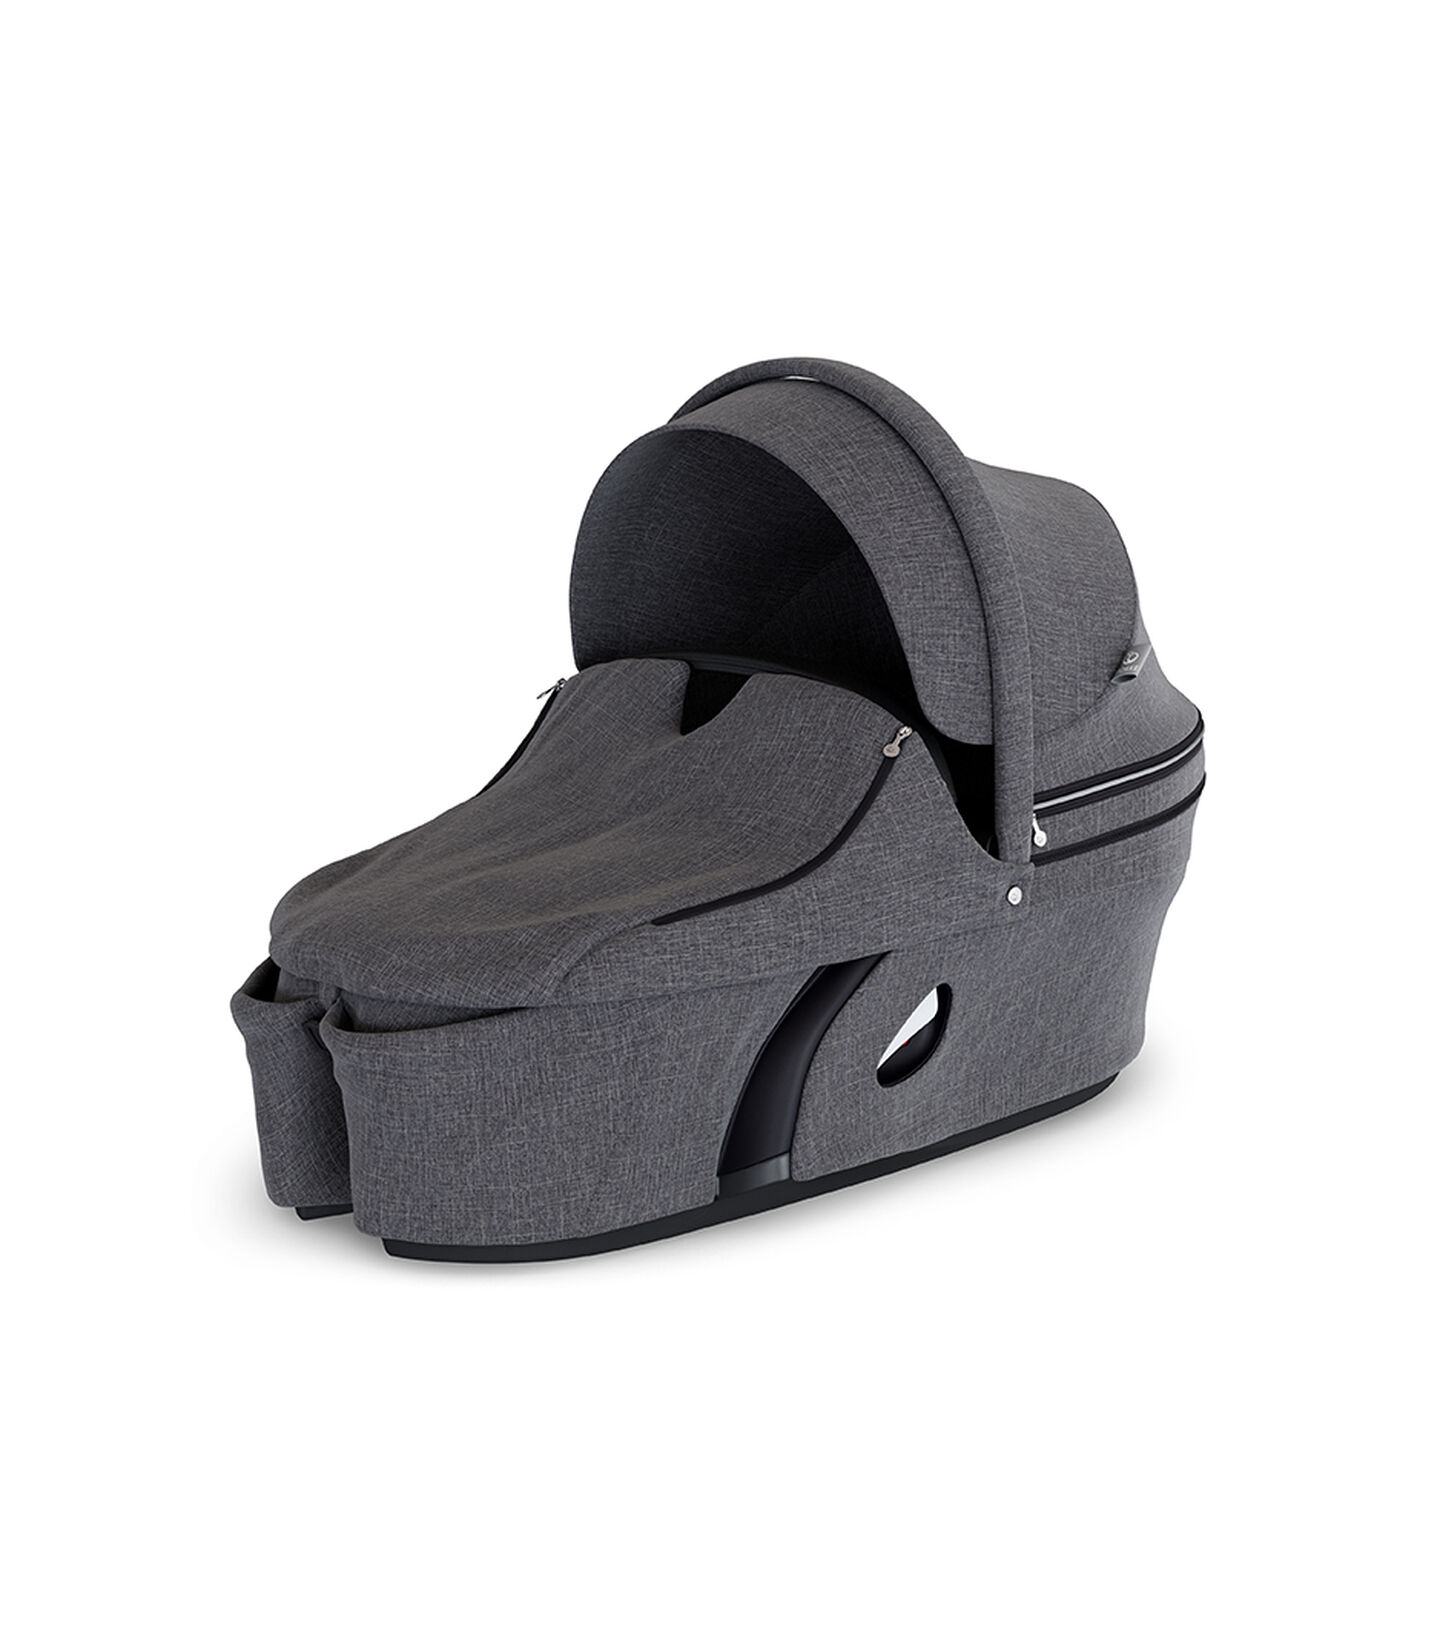 Stokke® Xplory® Carry Cot Black Melange. With Storm Cover. view 2